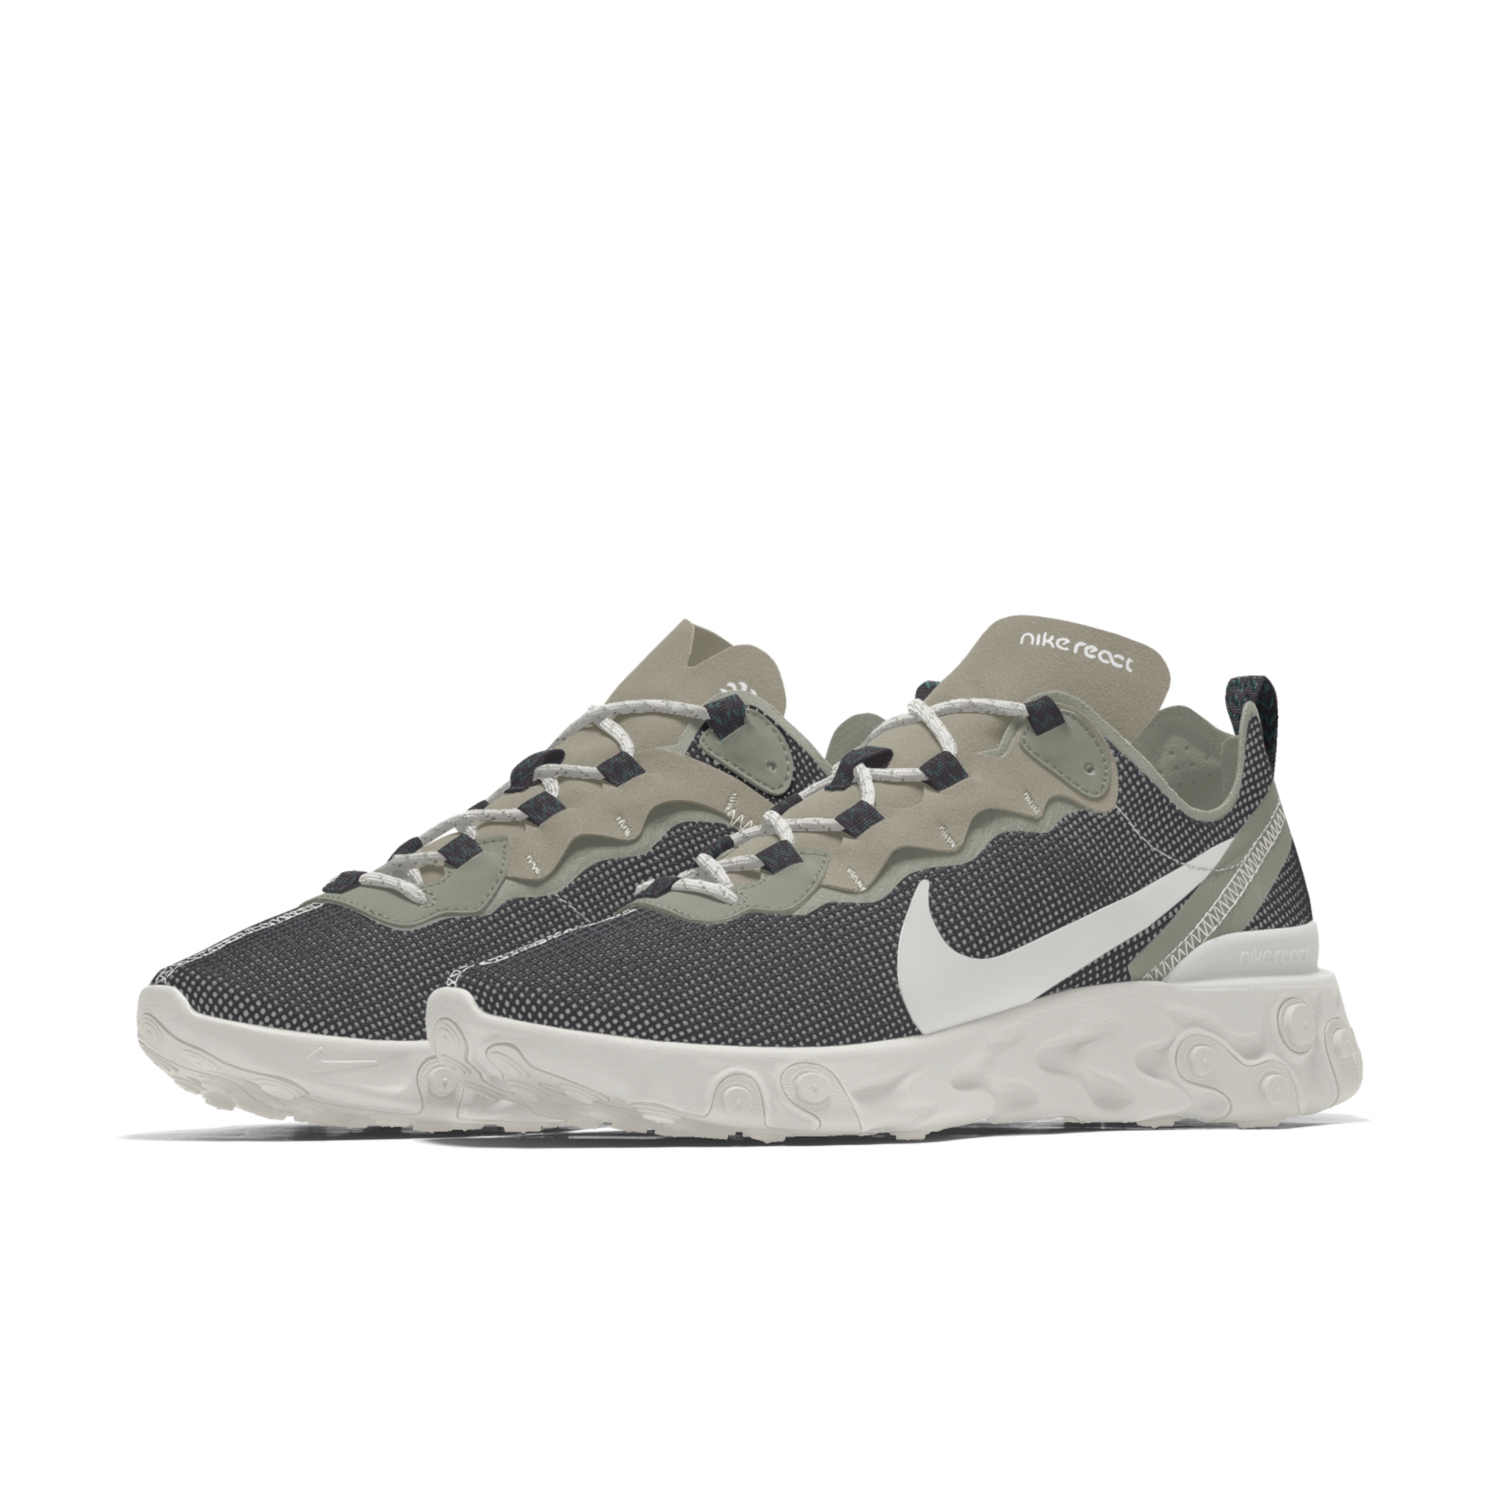 nike khaki react element 55 trainers